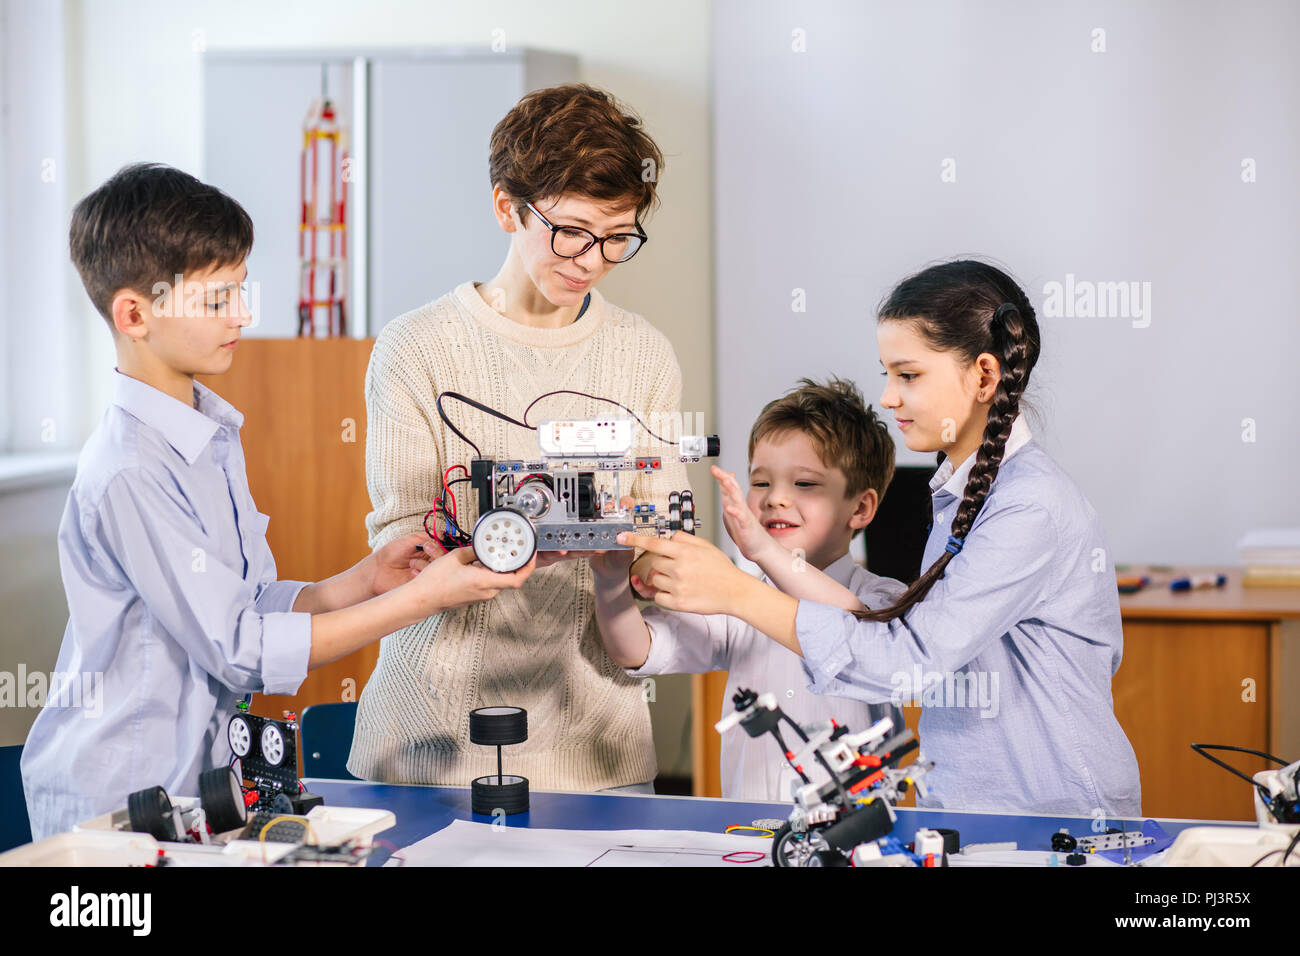 Happy children learn programming using laptops on extracurricular classes - Stock Image